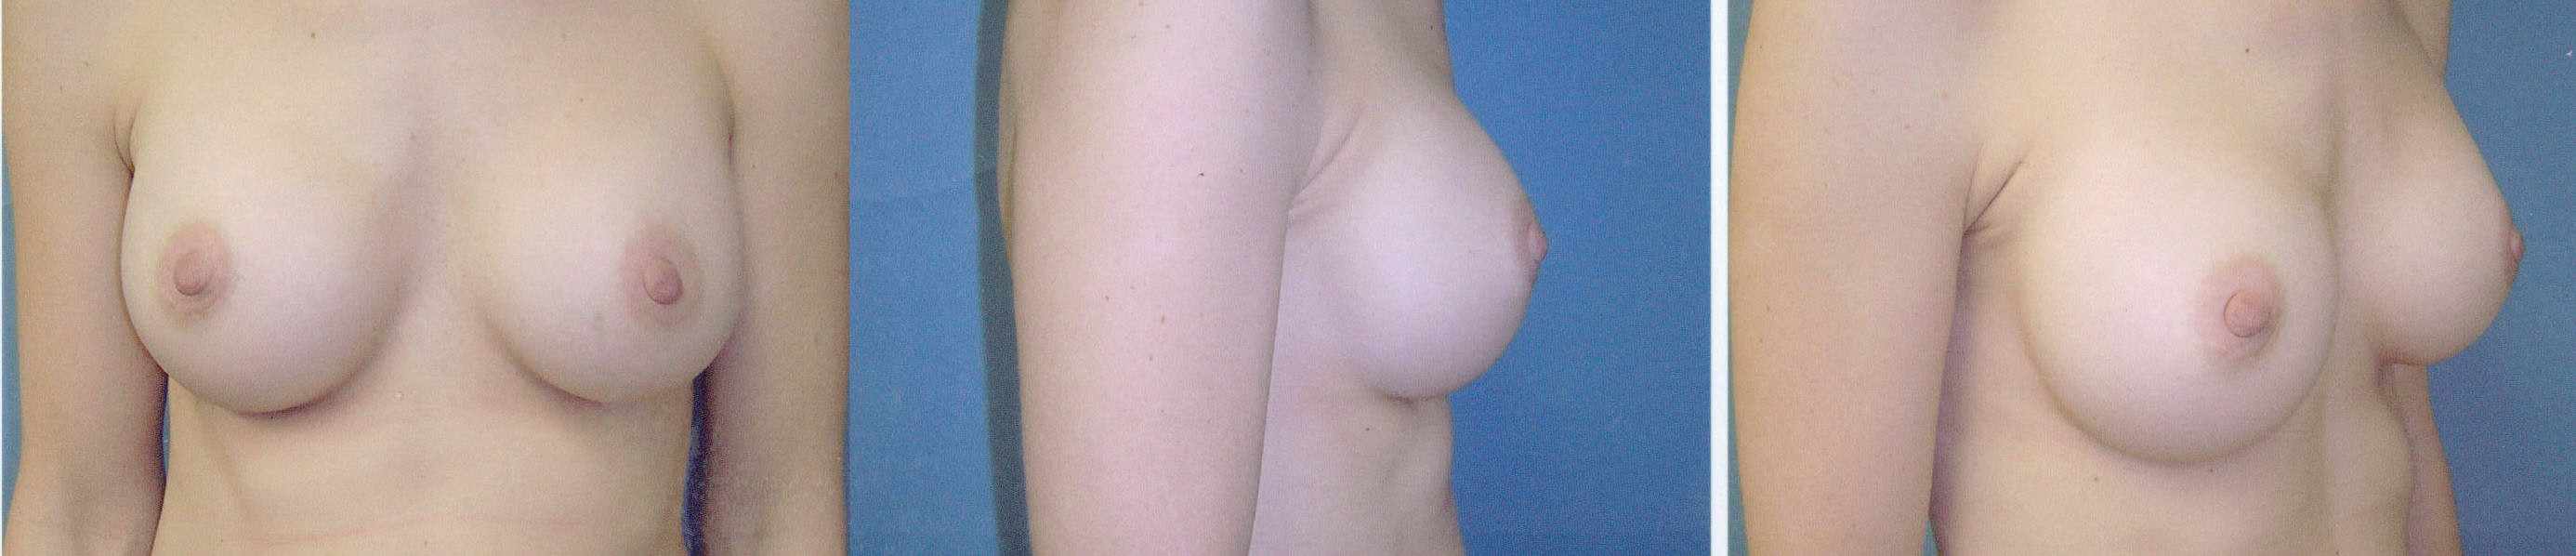 Breast Image 14 after implants